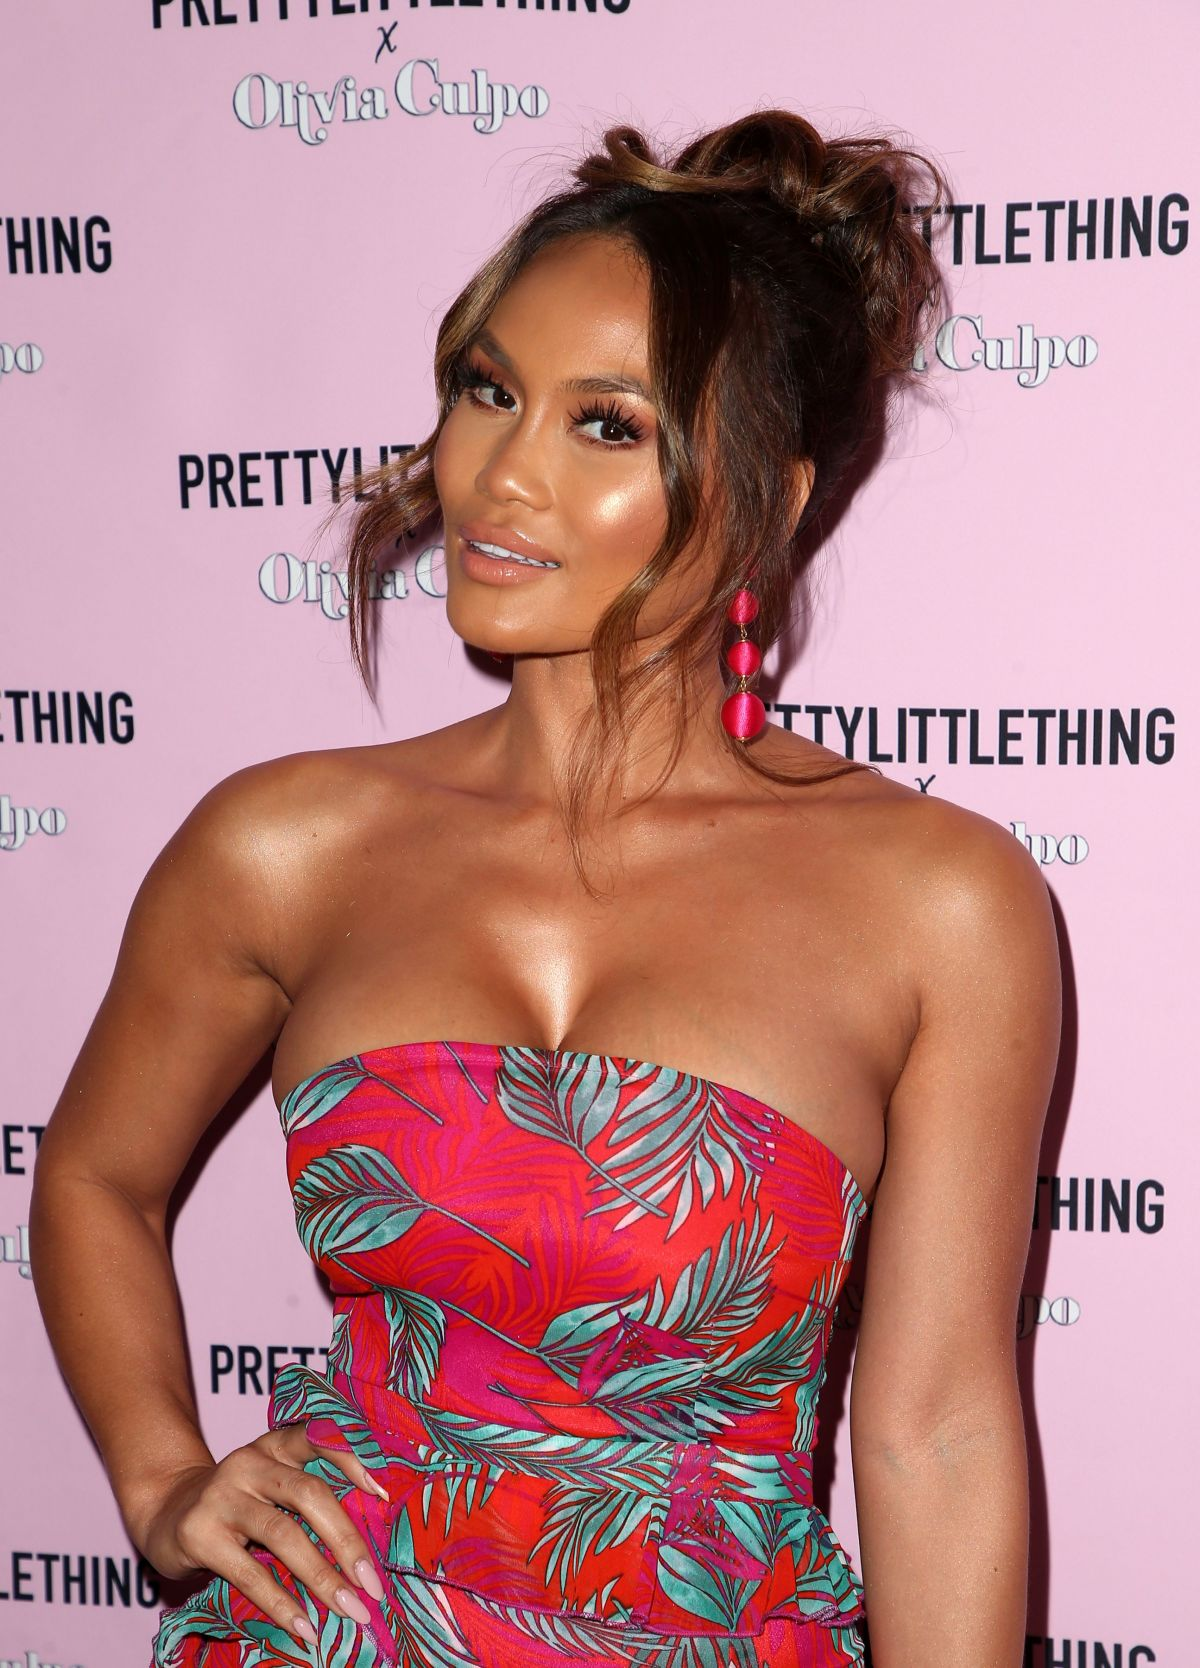 DAPHNE JOY at The Prettylittlething x Olivia Culpo Launch in Hollywood 08/17/2017